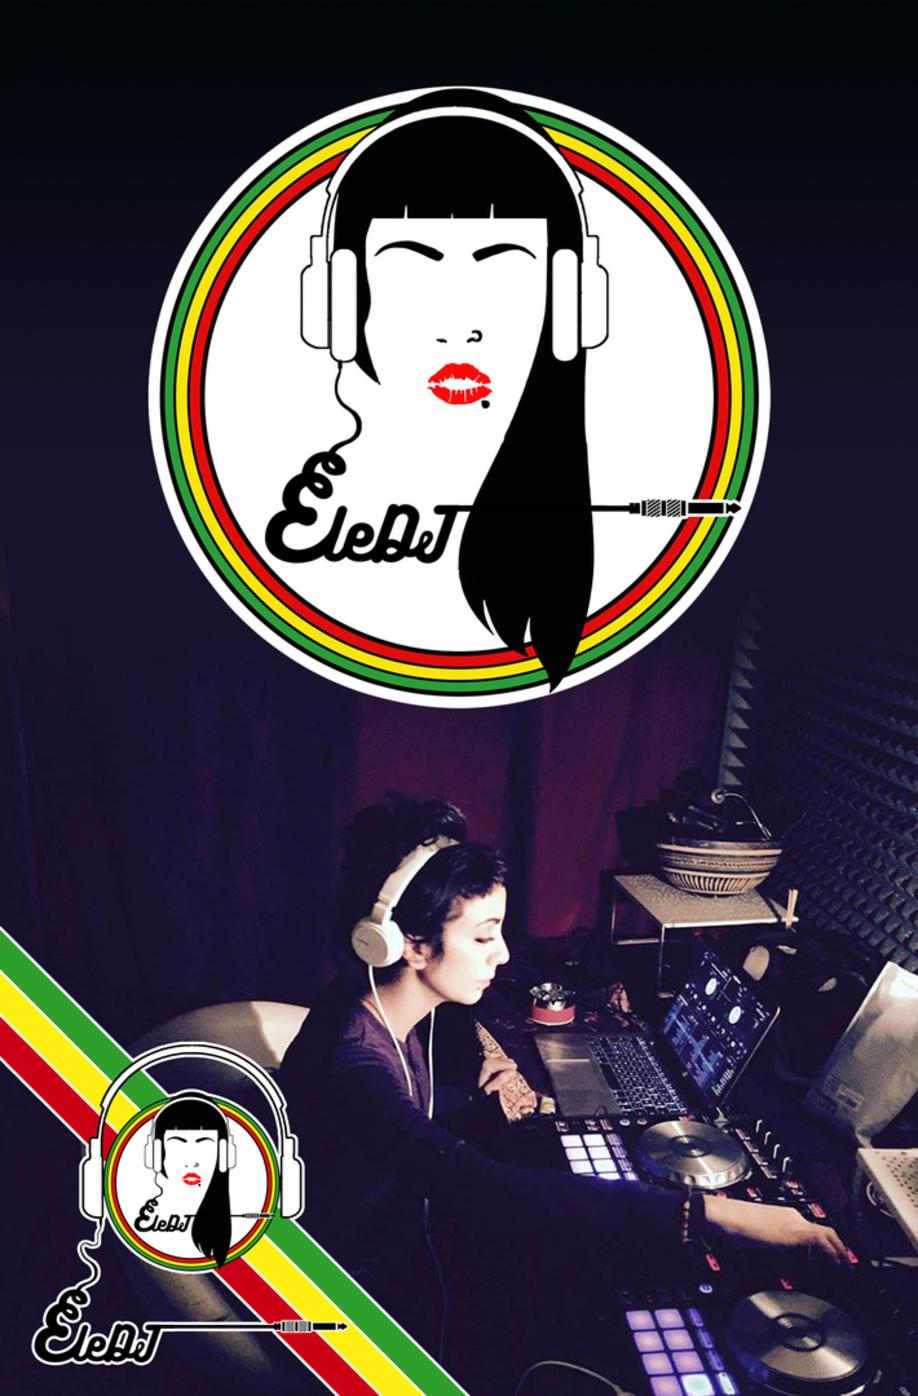 ELE DJ LOGO REGGAE RISING TIME GRAFICA MODELLAZIONE 3D MODEL PROJECT DESIGN DESIGN107